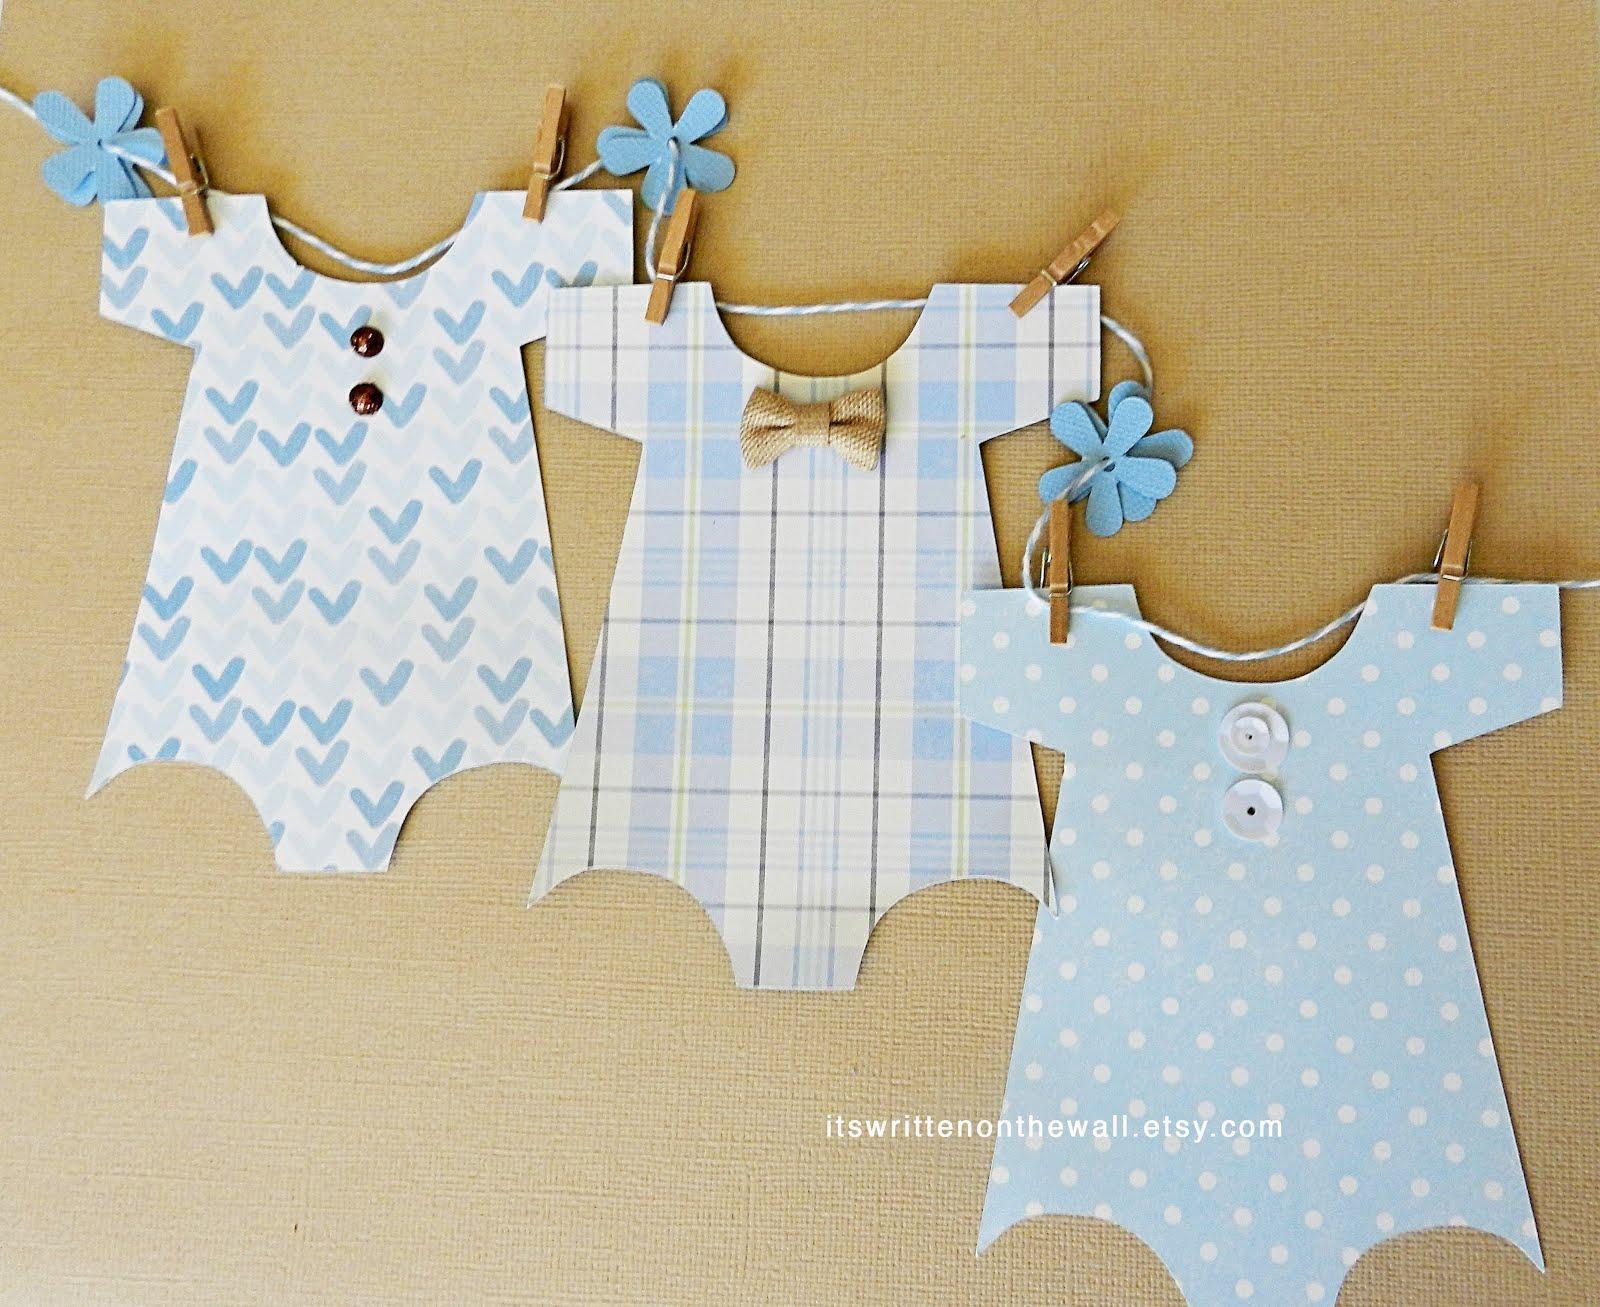 For Baby Shower or Babies Nursery-Baby Boy Garland / Banner